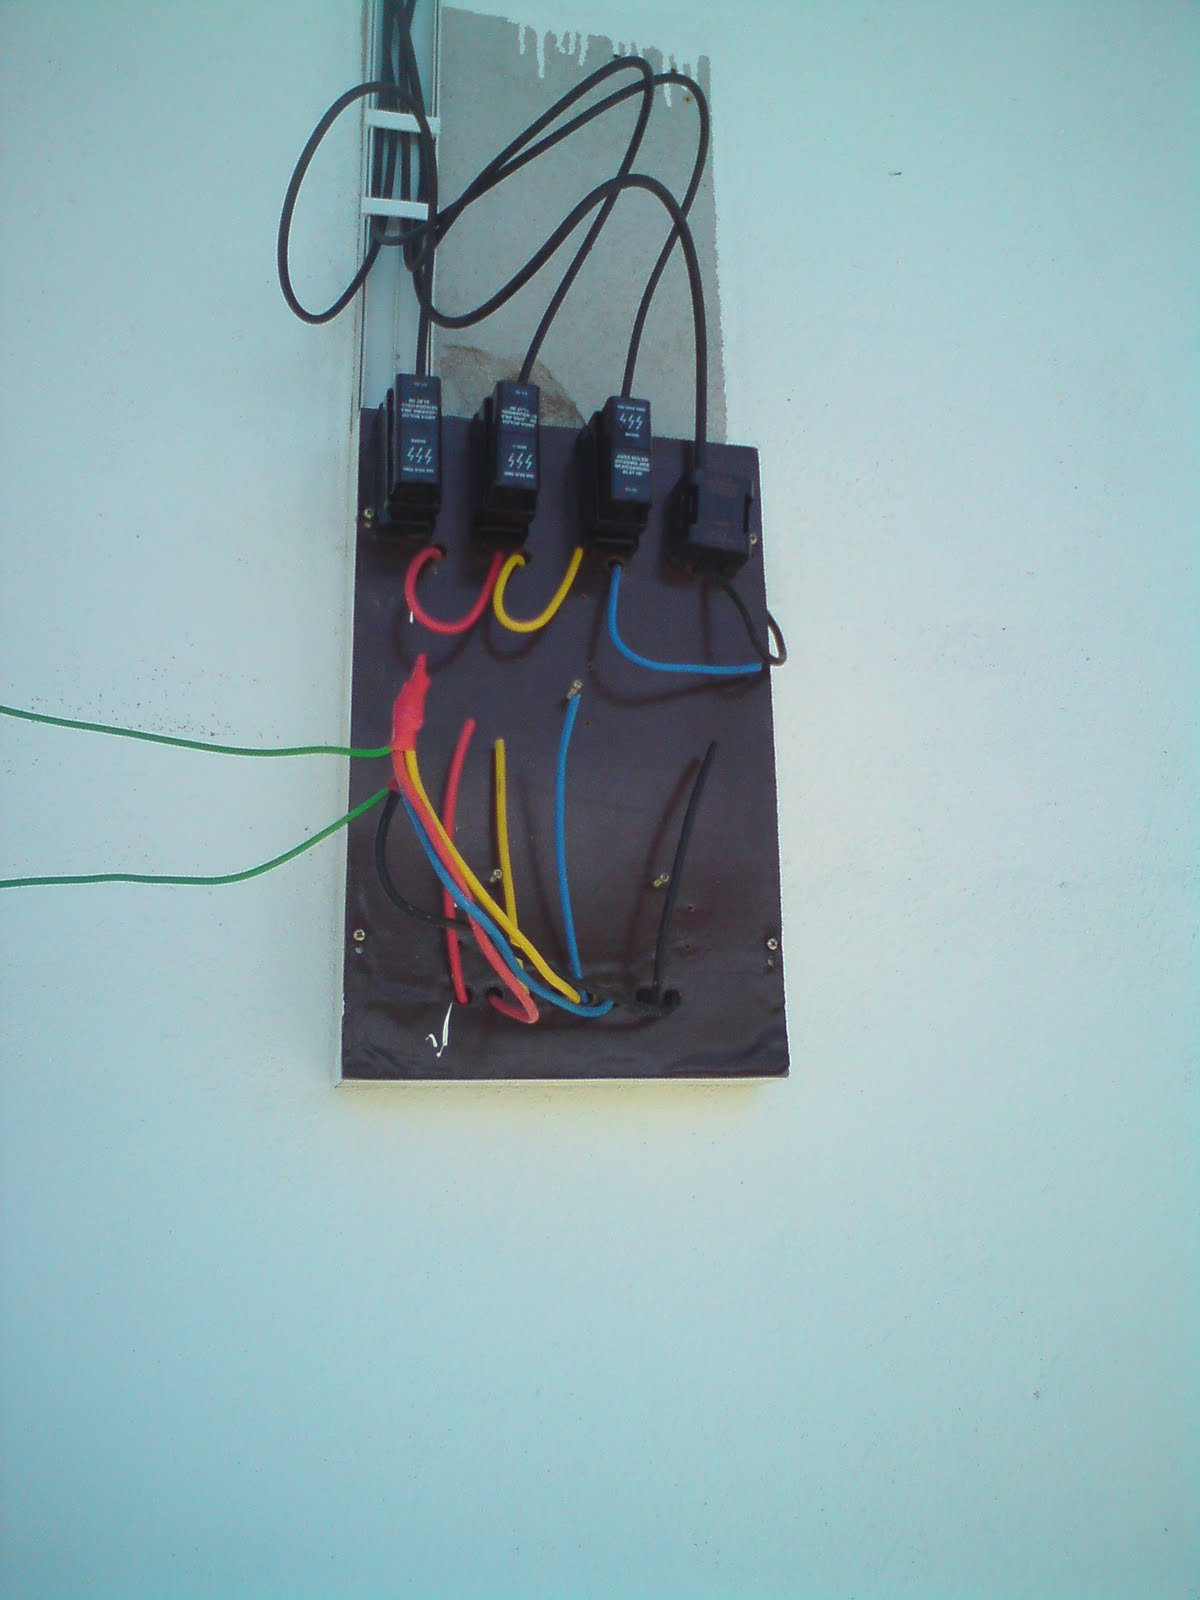 Use 3 cut out and 3 fuse. For house that used larges load. 3 phase wire  that indicate red, yellow and blue. 1 neutral wire color with black. CT  METER